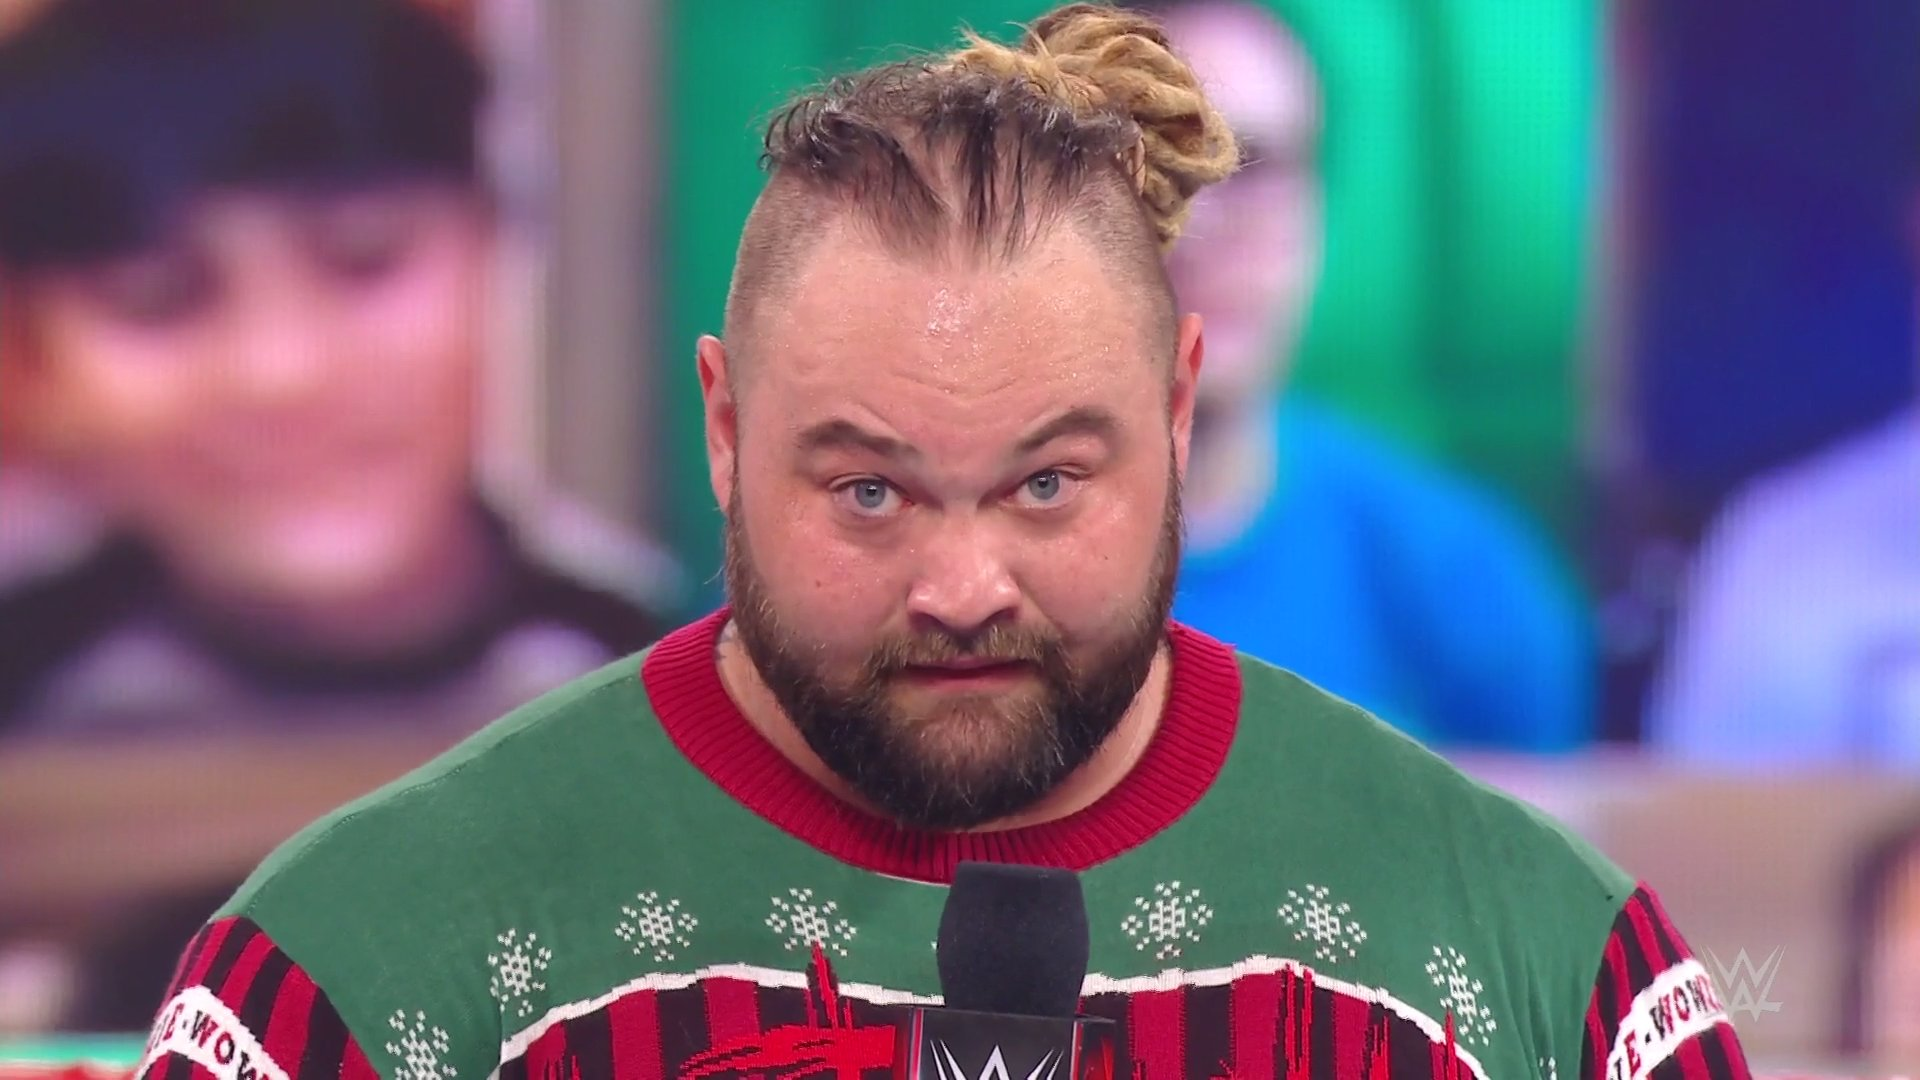 Bray Wyatt Biography, Facts & Life Story Updated 2021